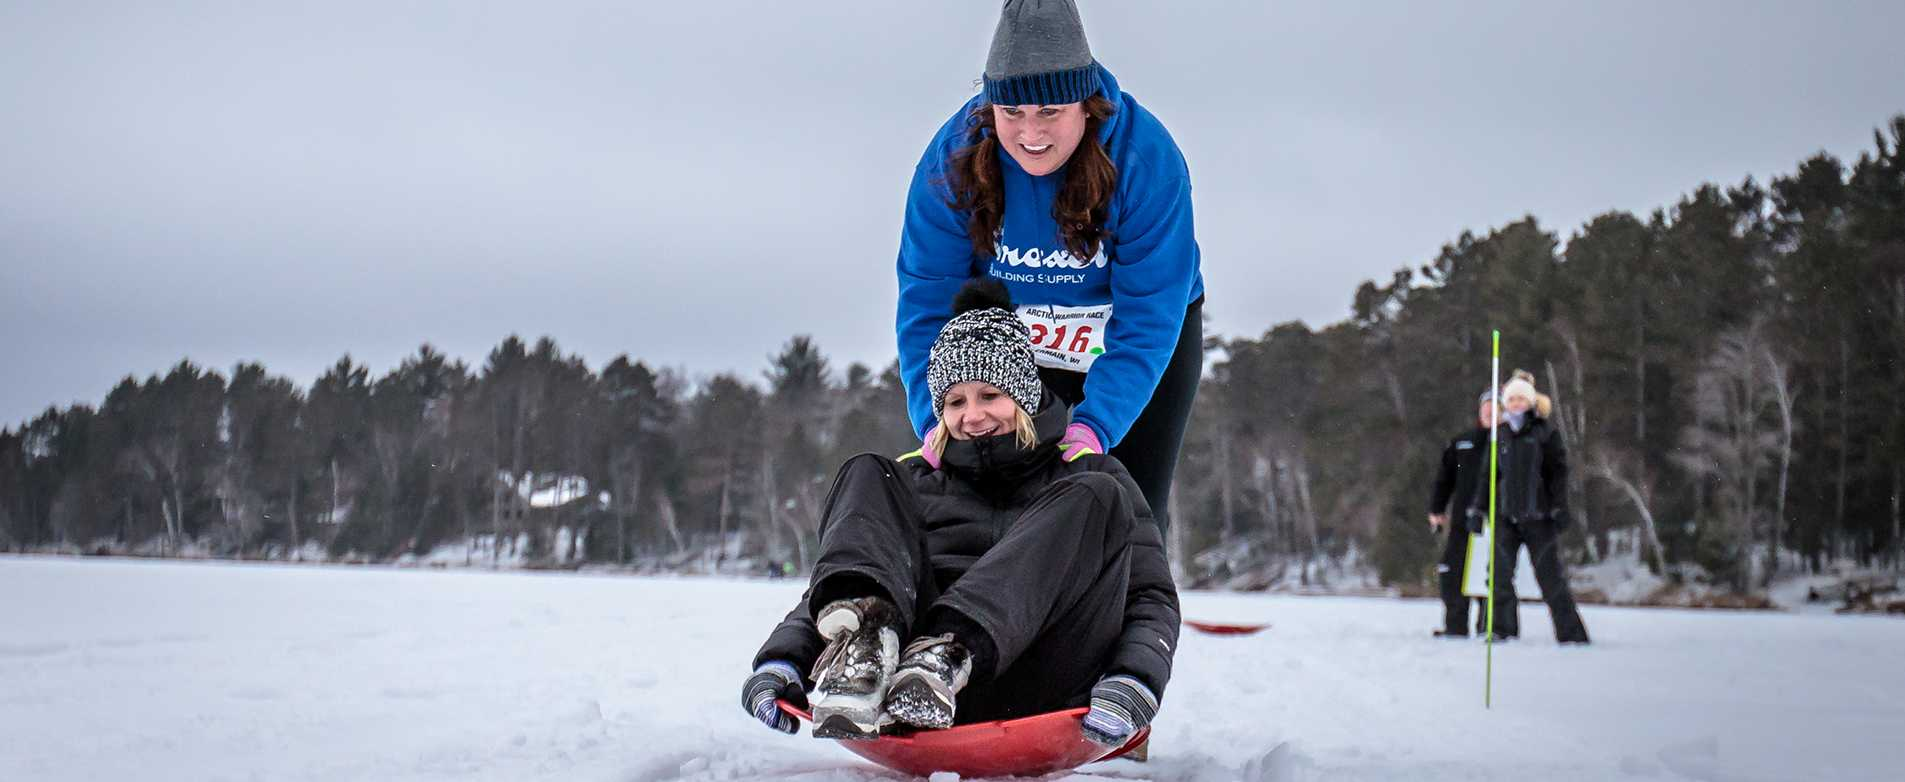 Woman pushing friend on sled